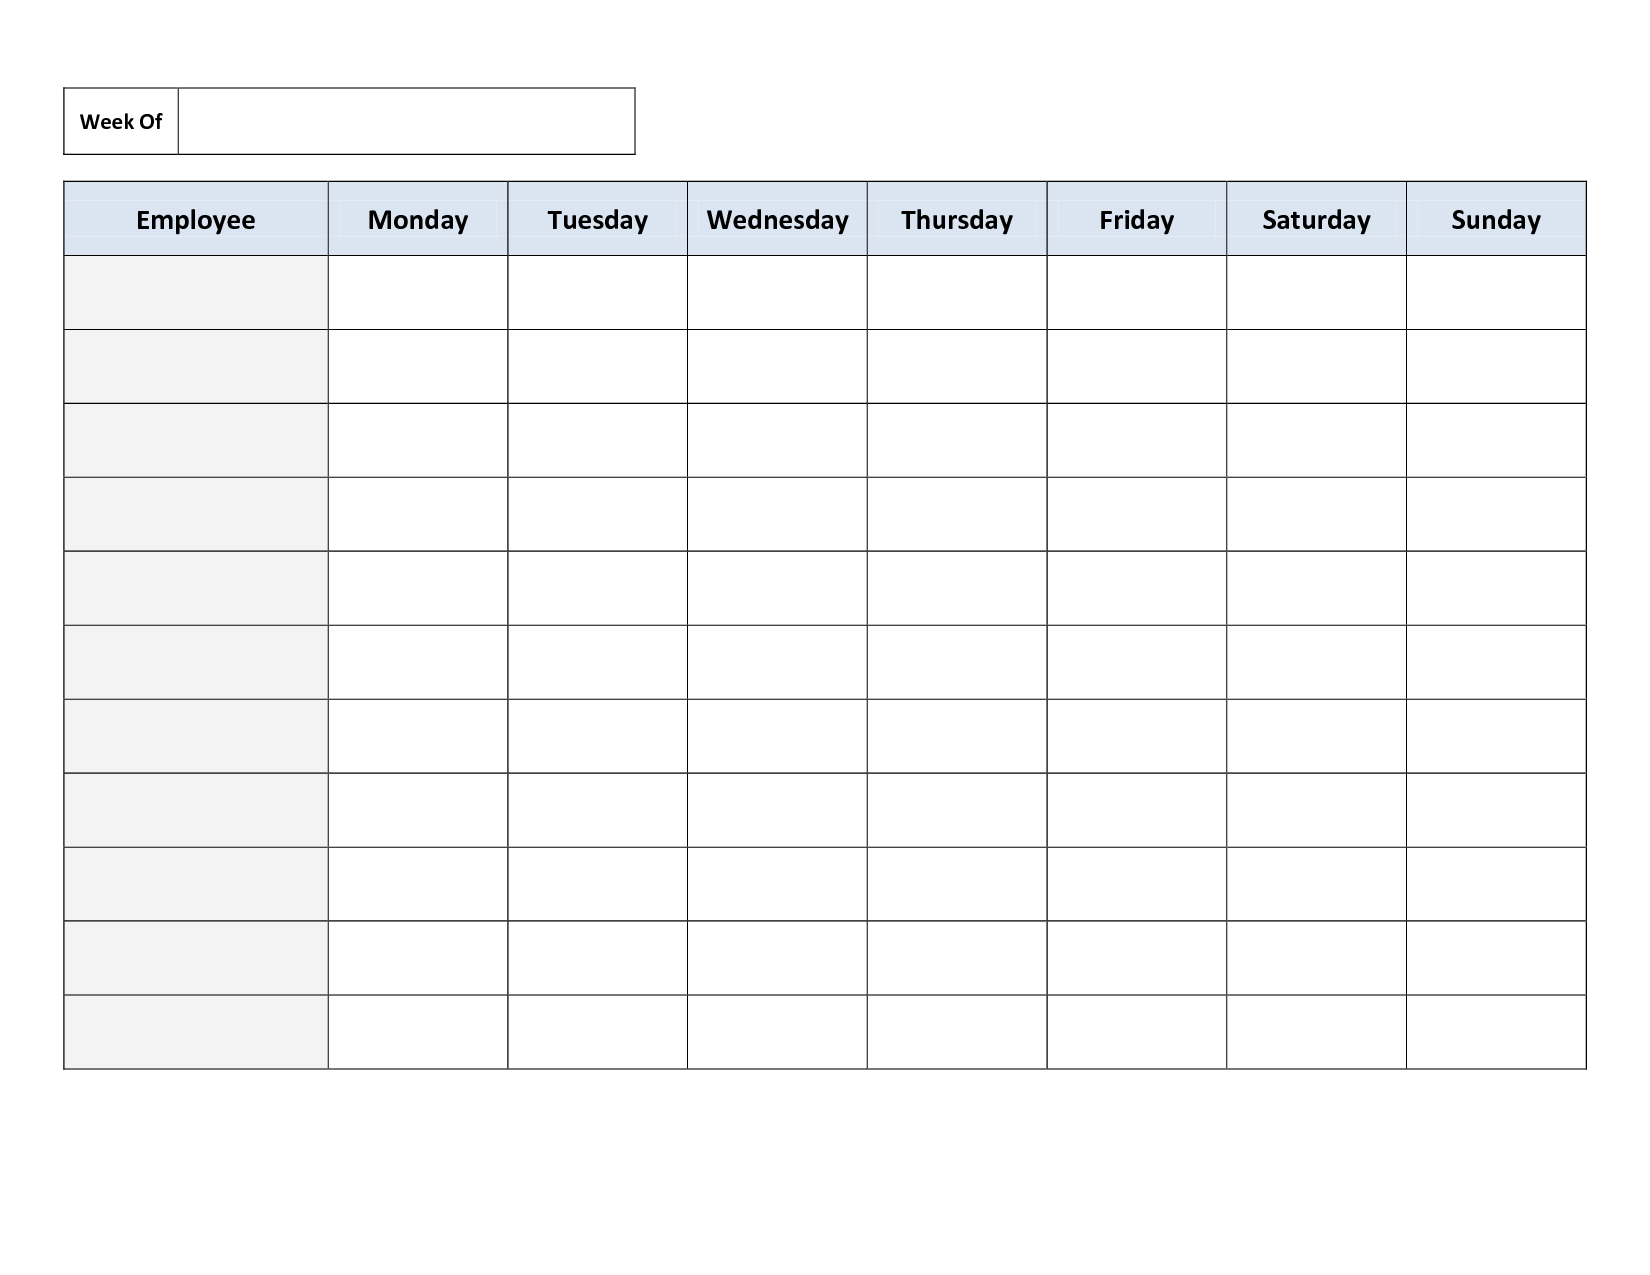 Free Printable Work Schedules | Weekly Employee Work Schedule - Free Printable Work Schedule Maker